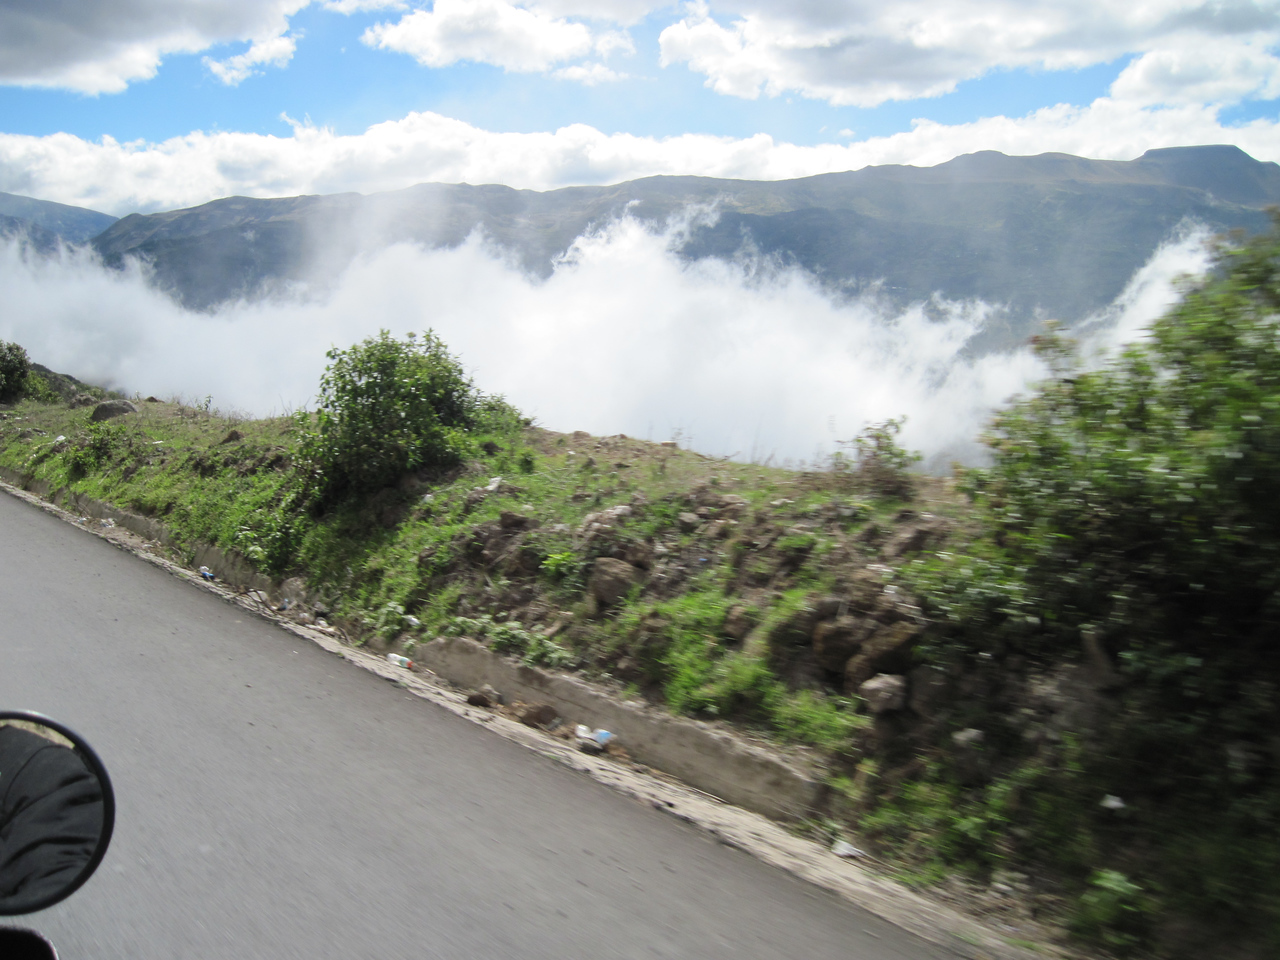 Riding in the Clouds